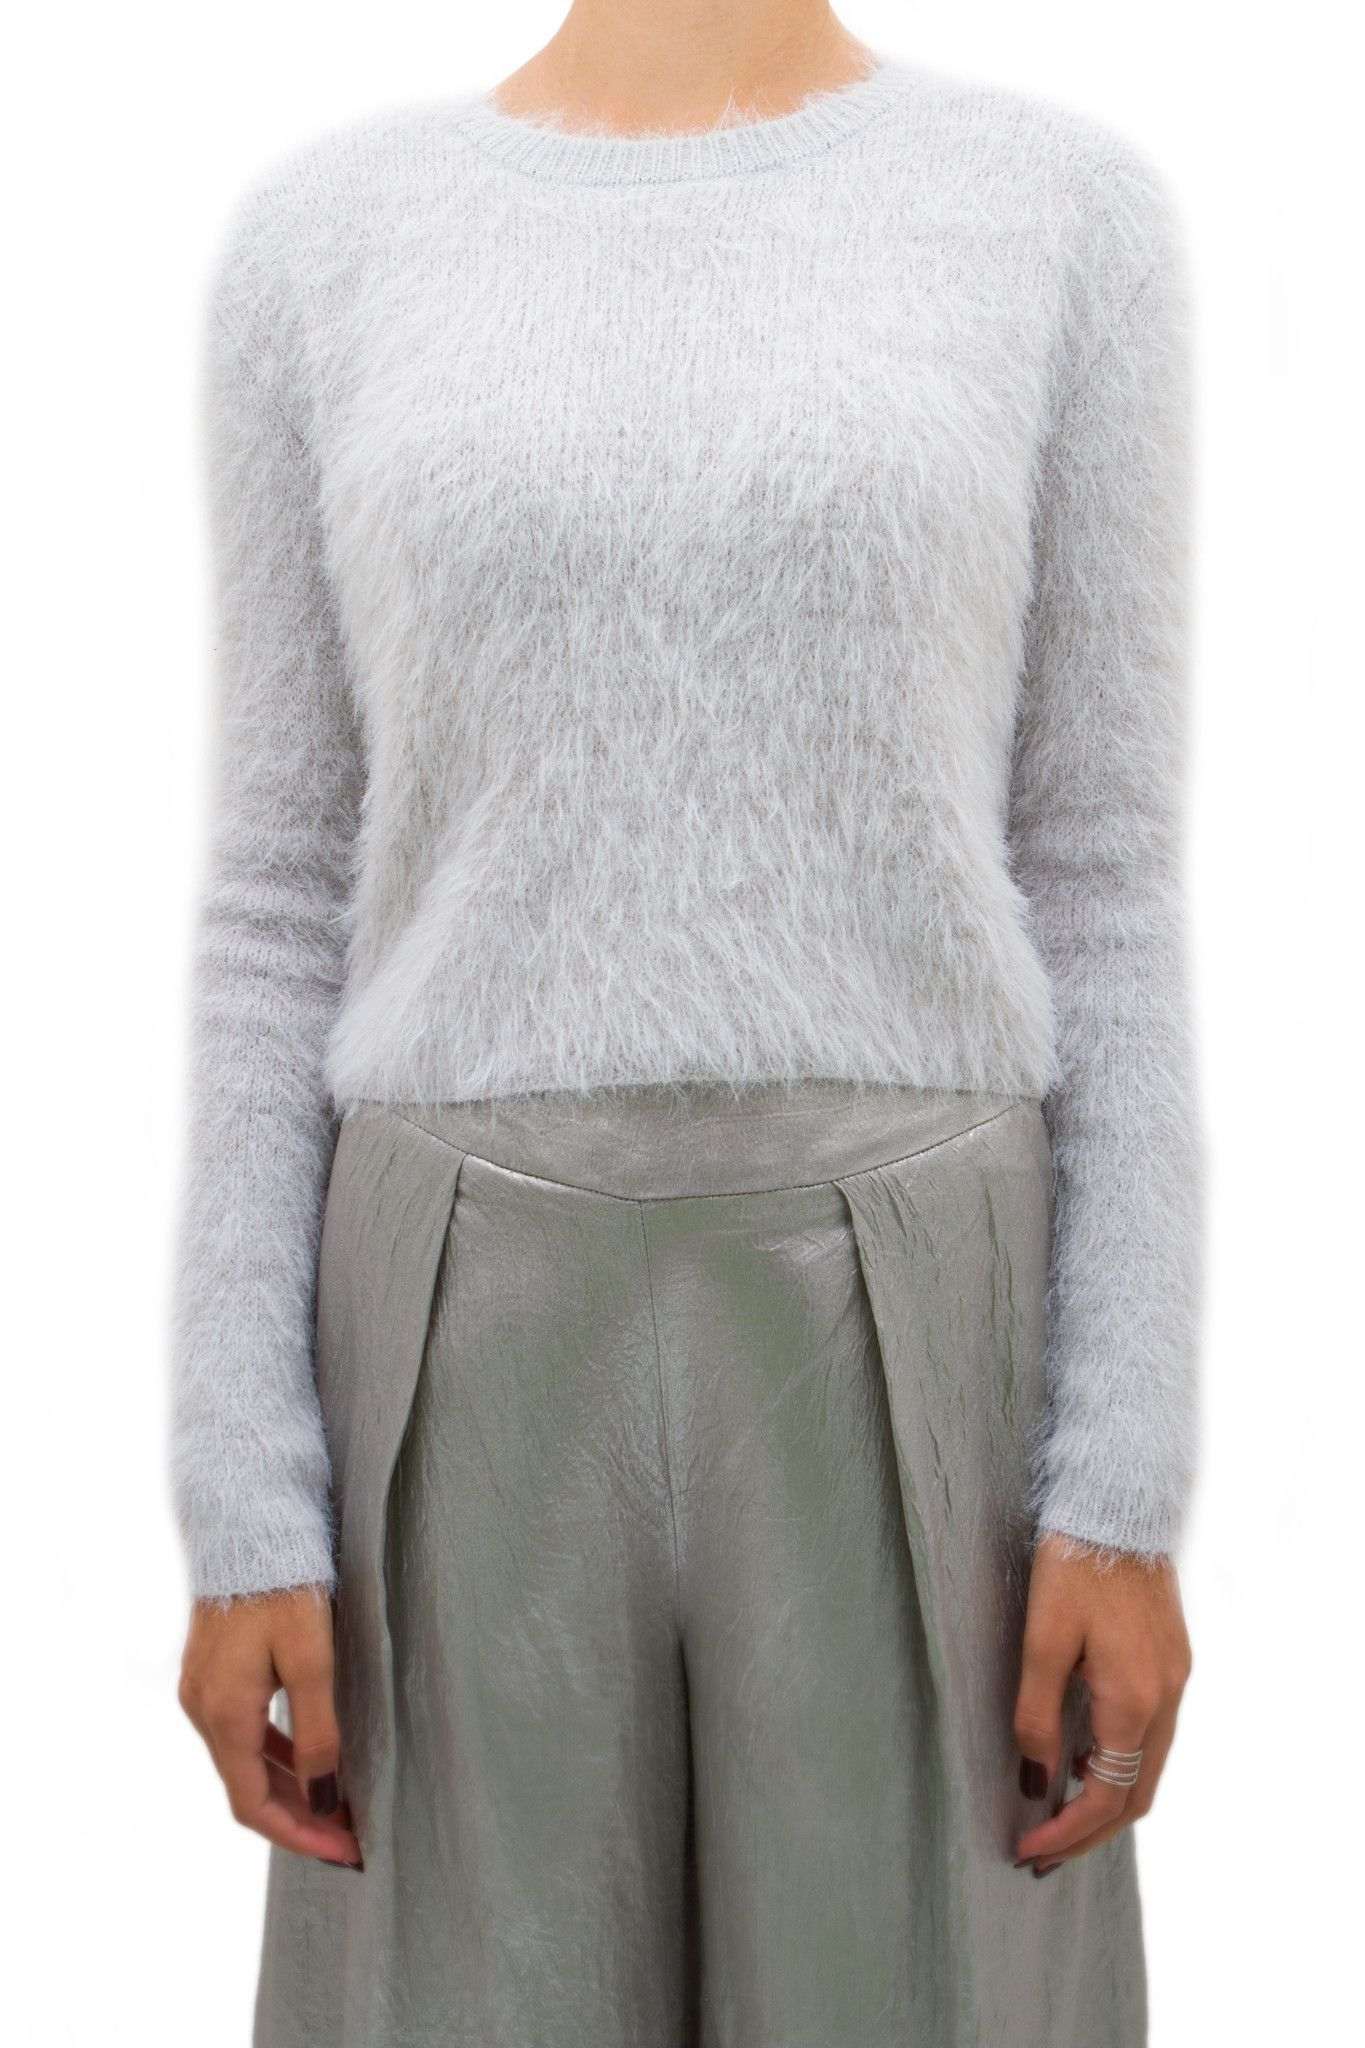 J.O.A. Light Grey Fuzzy Sweater | Tryin to be a stylish mofo ...